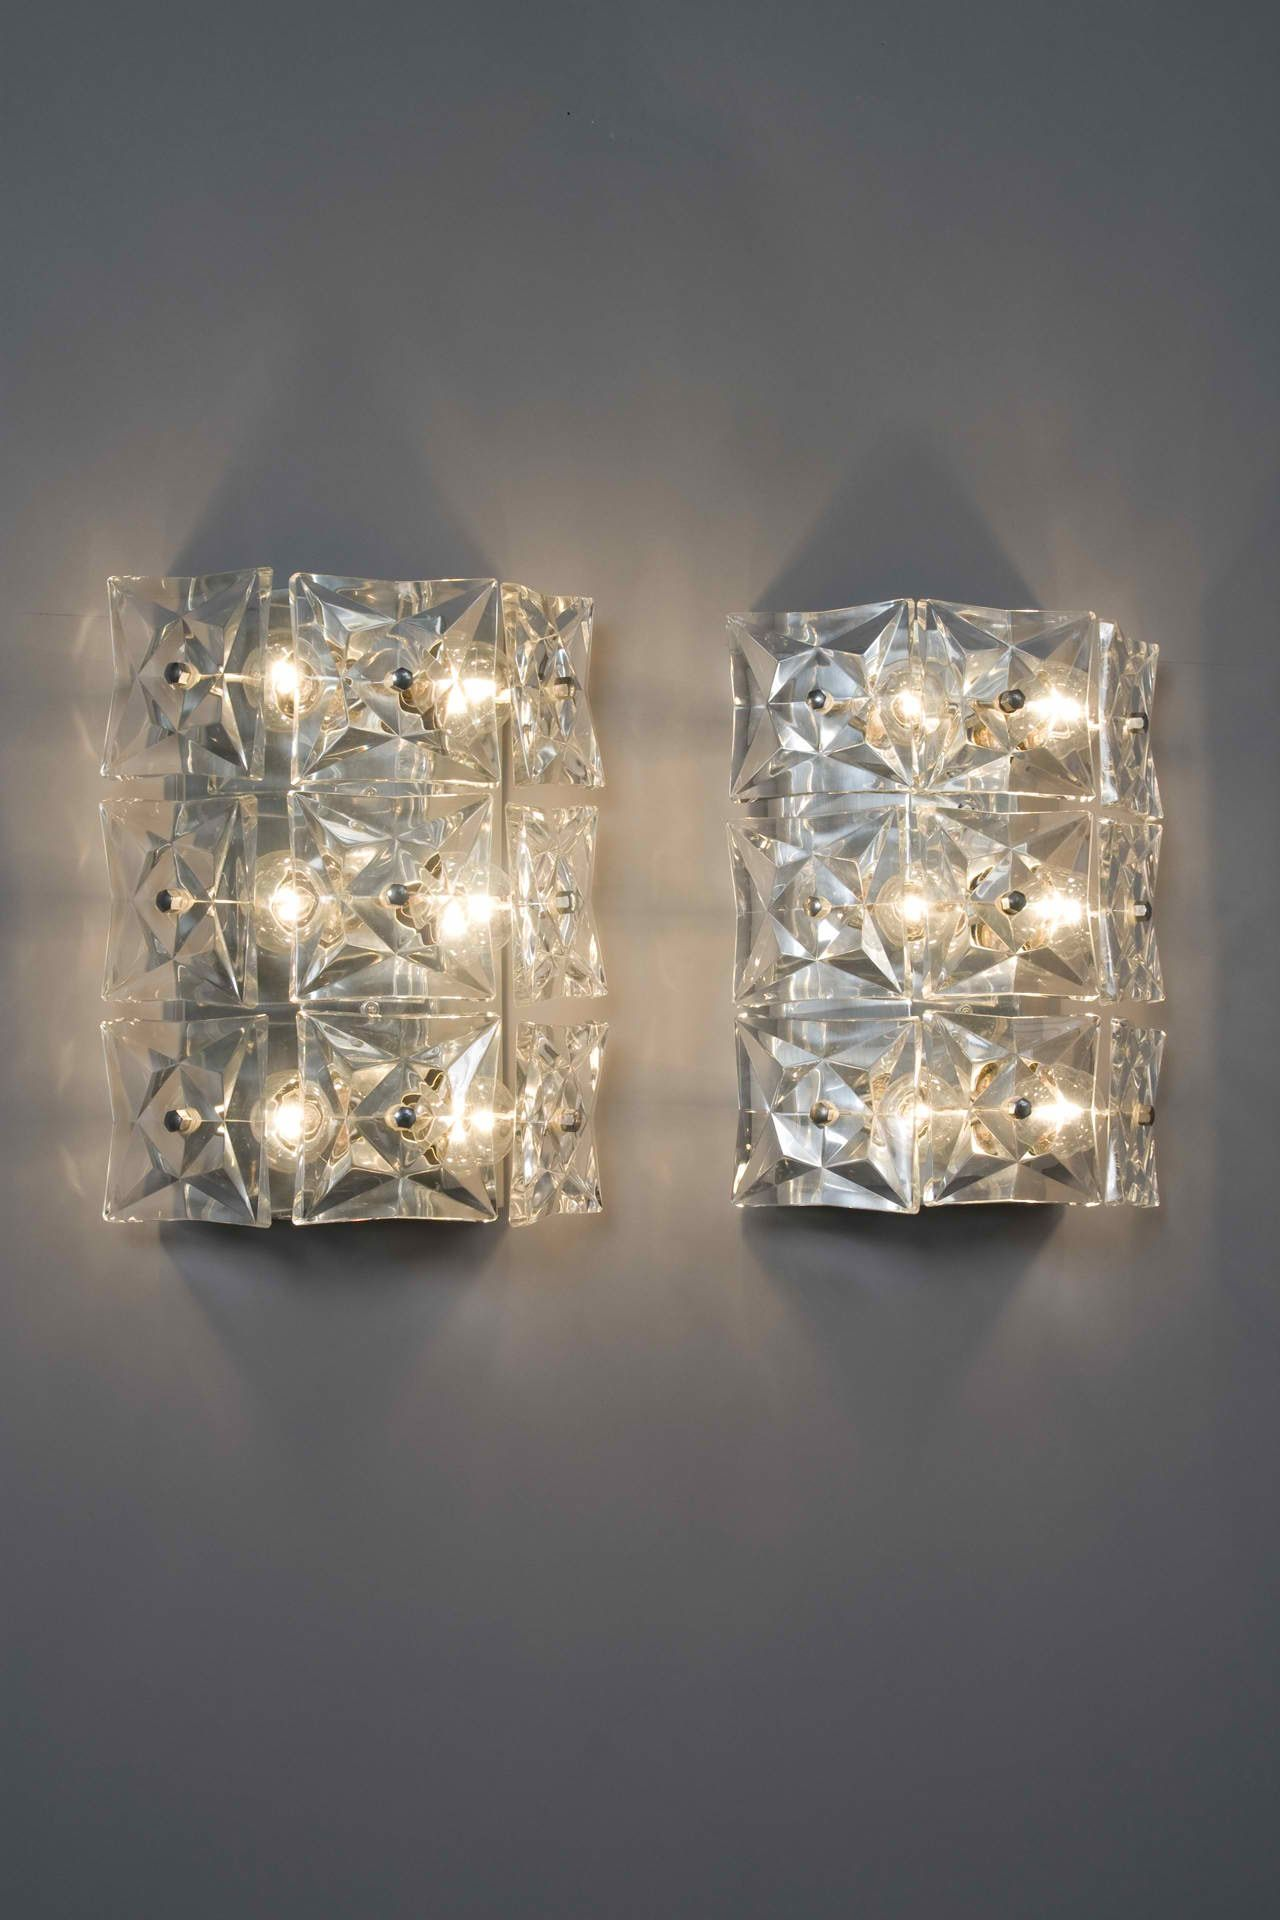 Crystal sconces | Home furniture | Pinterest | Crystal sconce, Bath ...